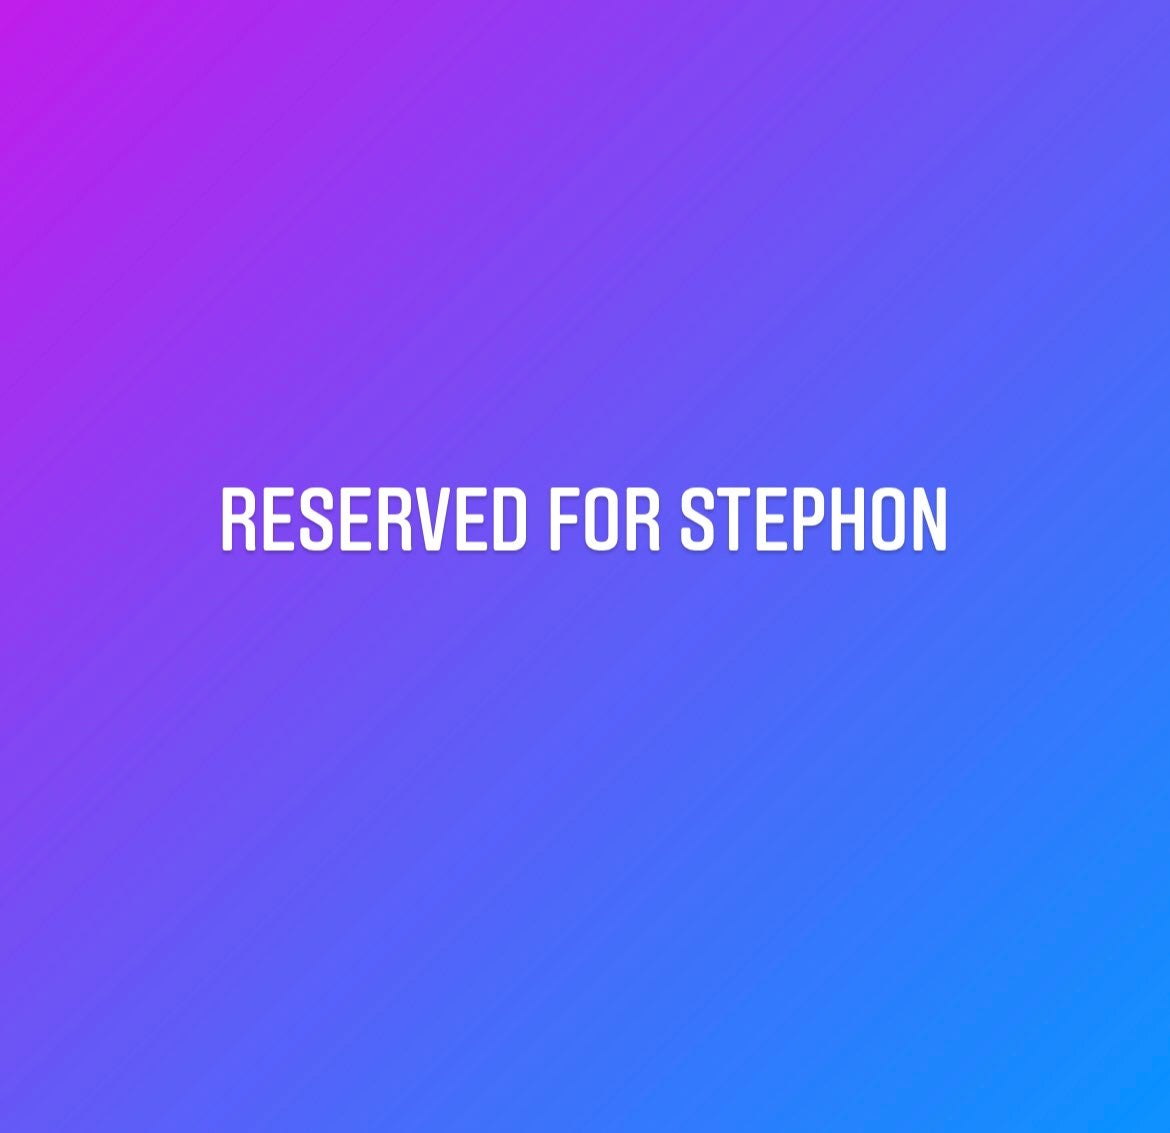 RESERVED FOR STEPHON